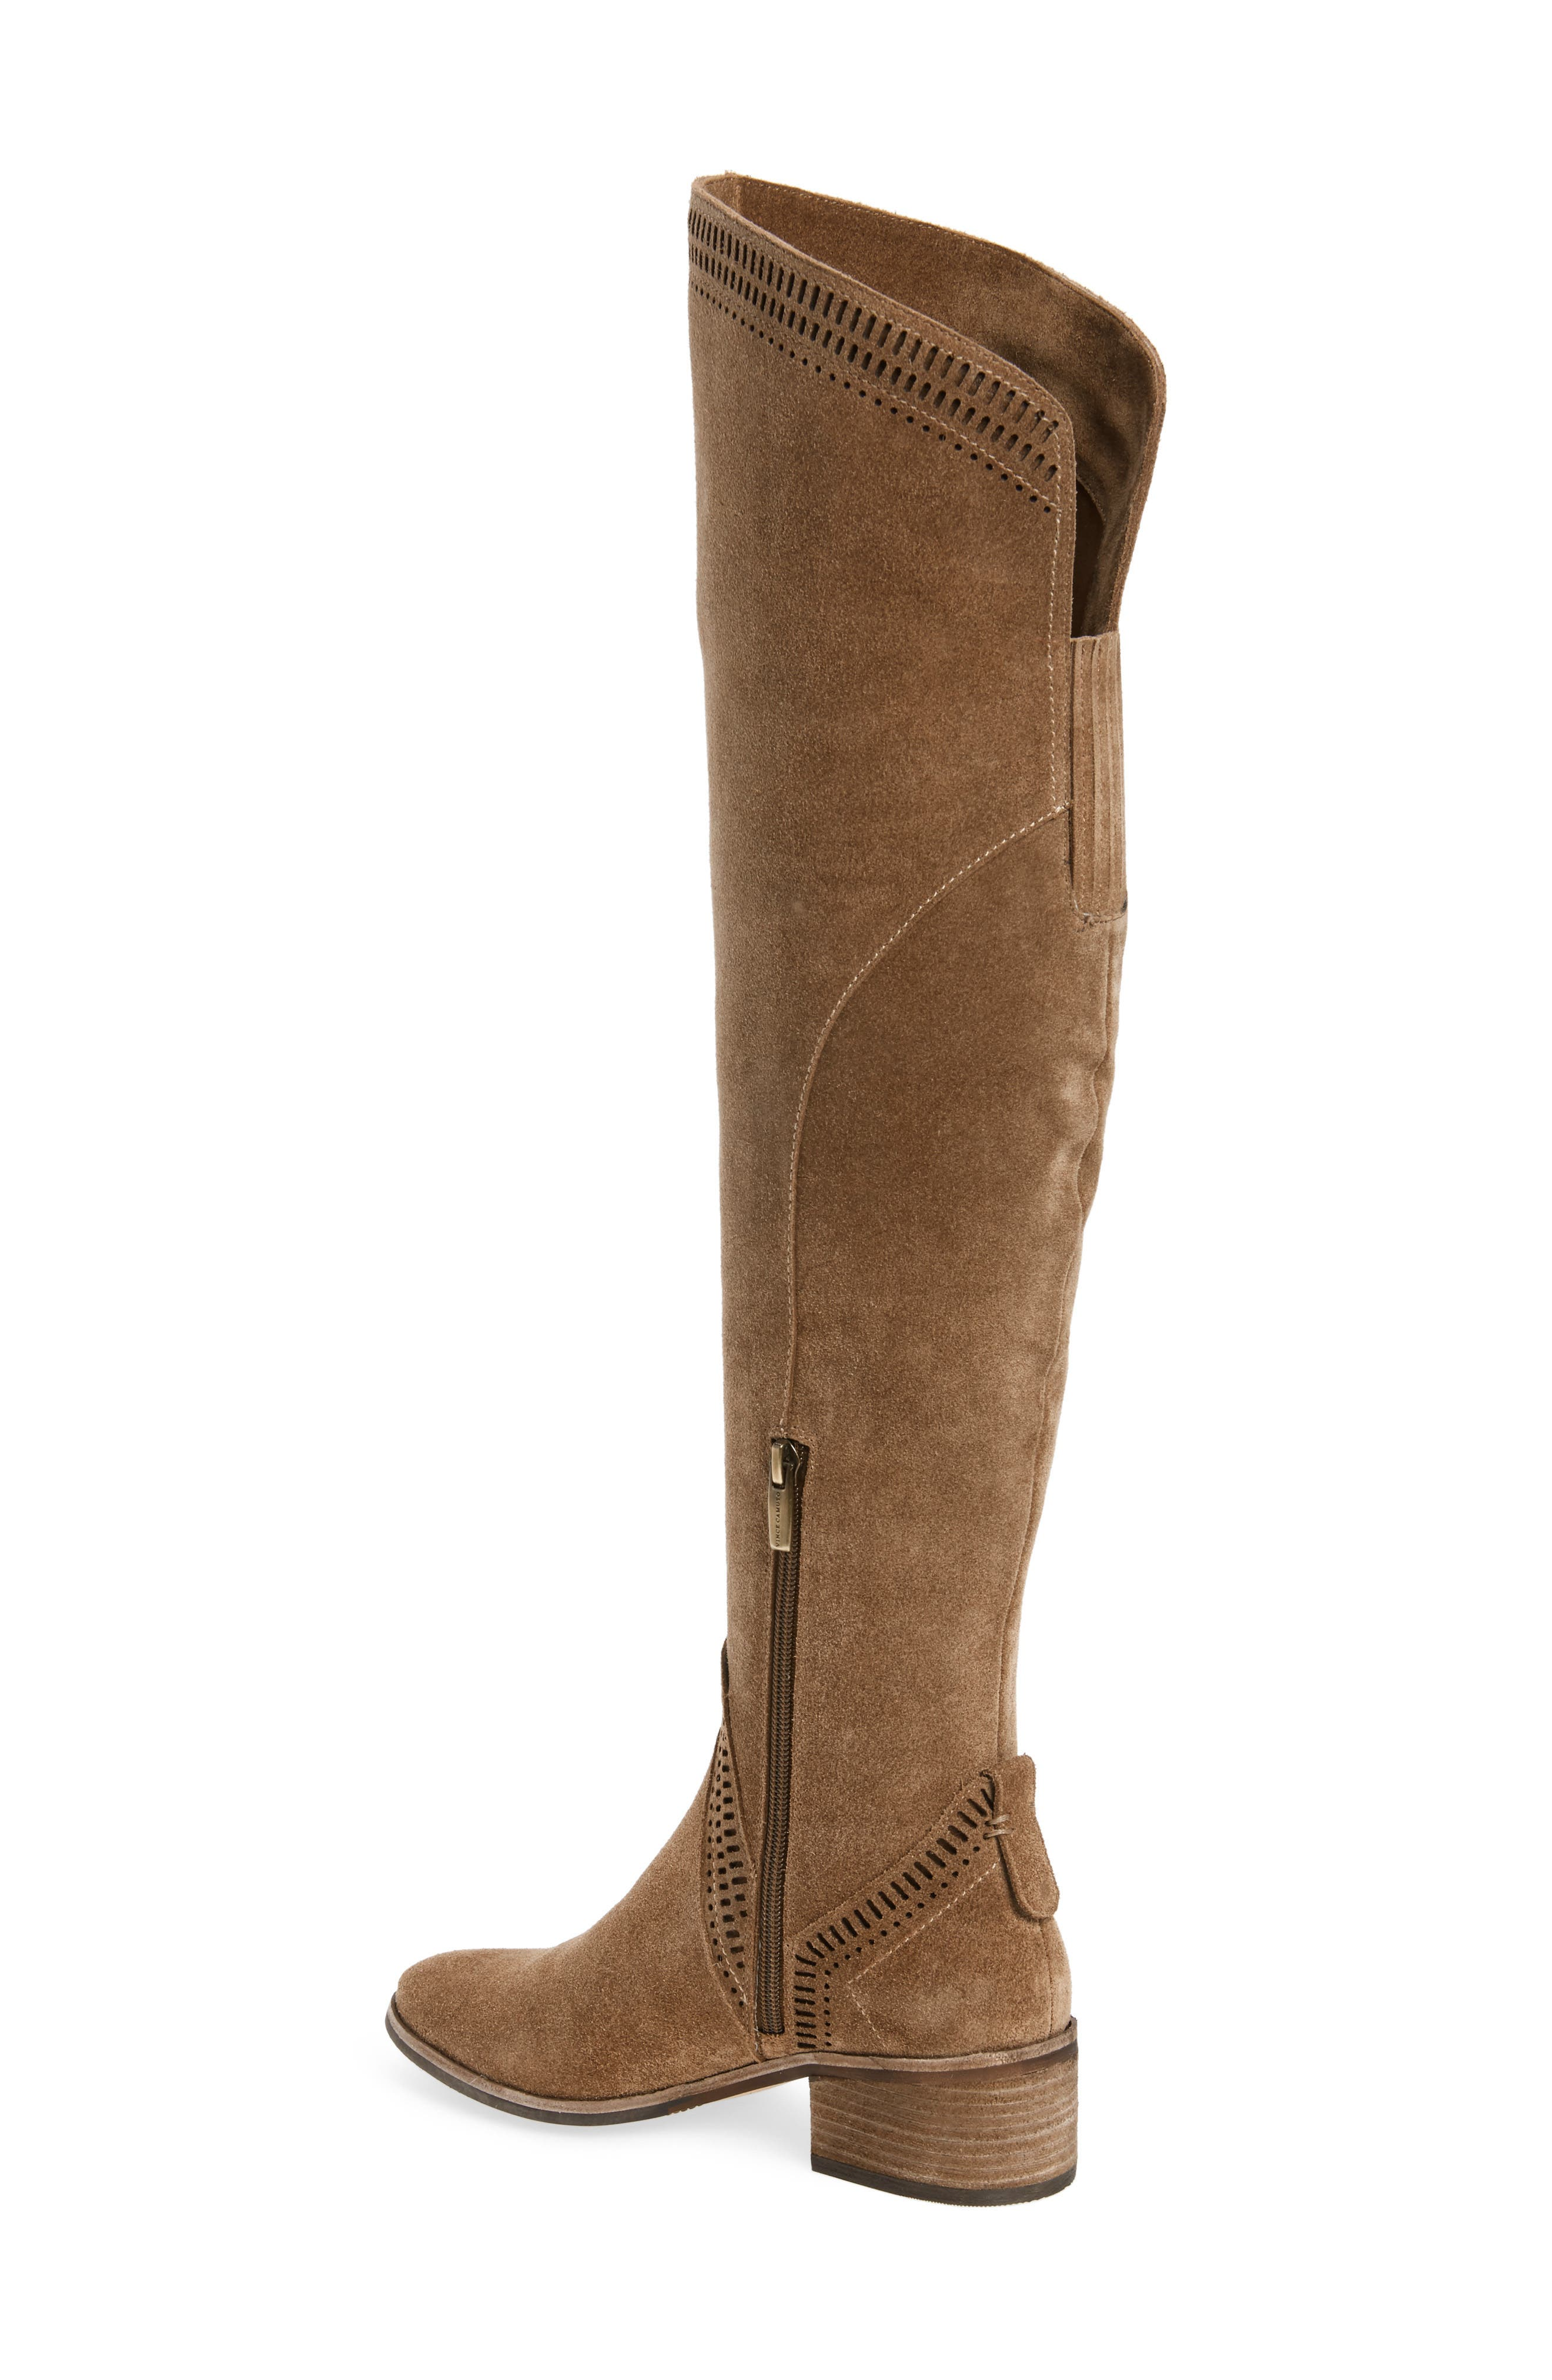 VINCE CAMUTO, Karinda Over the Knee Boot, Alternate thumbnail 2, color, 200